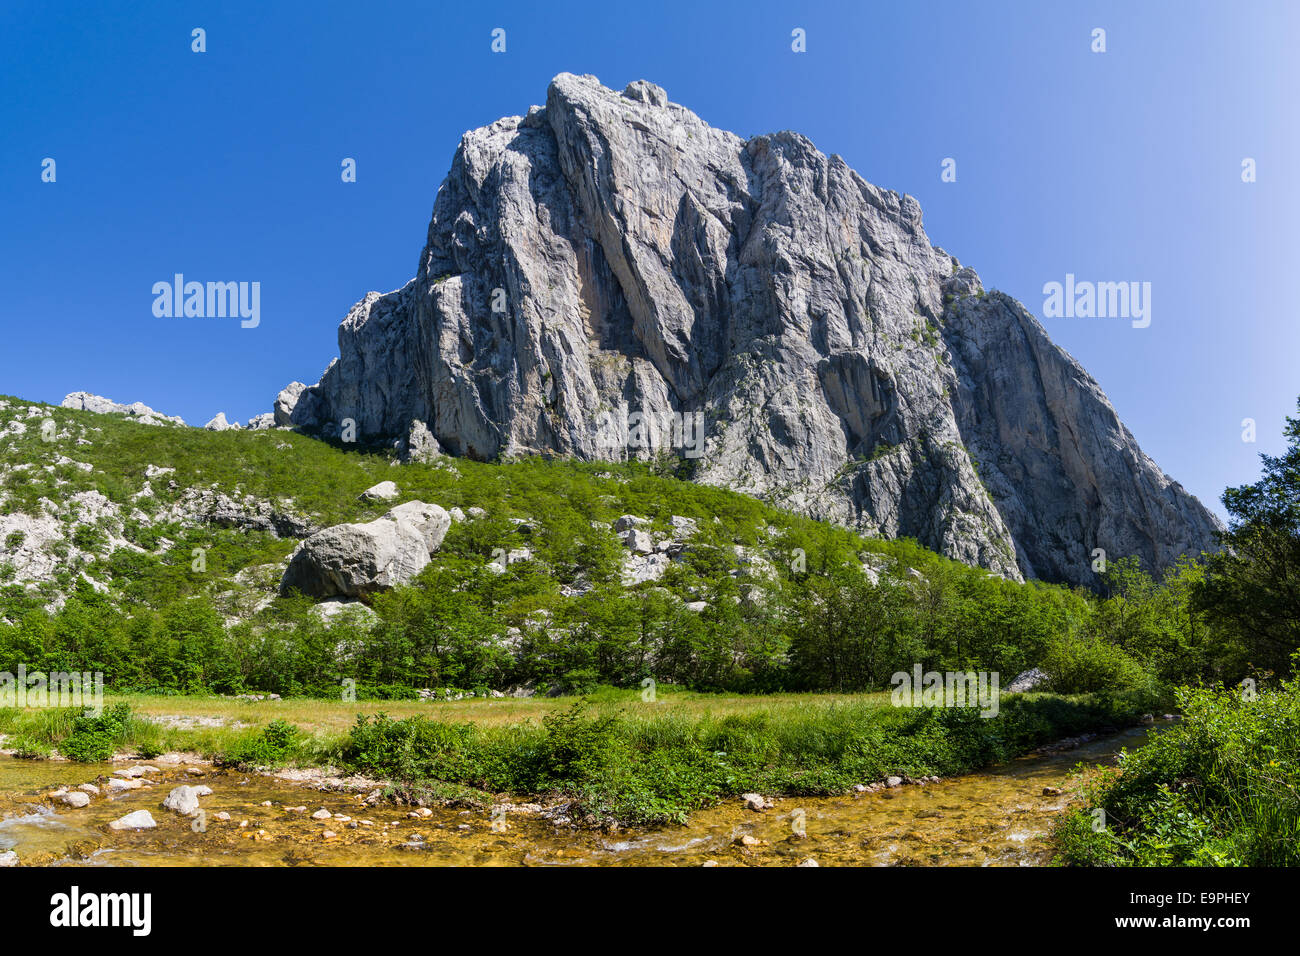 Velebit, most famous mountain in Croatia. Known for it's natural beauty. Stock Photo